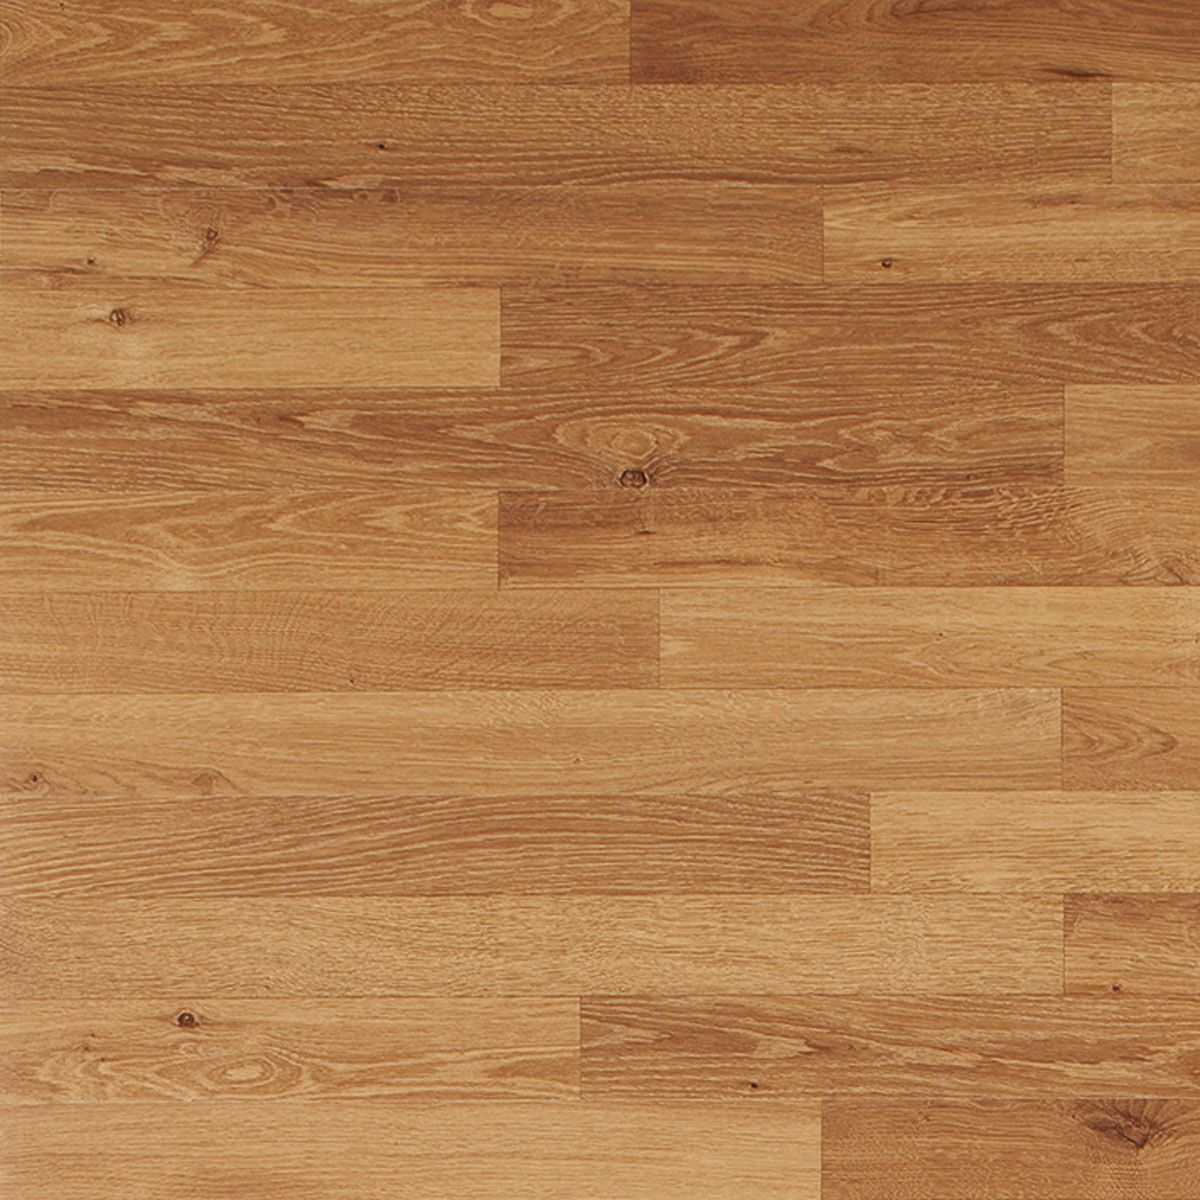 Tanned oak 3 strip planks quick stepqs 700 tanned oak 3 interiors dailygadgetfo Choice Image